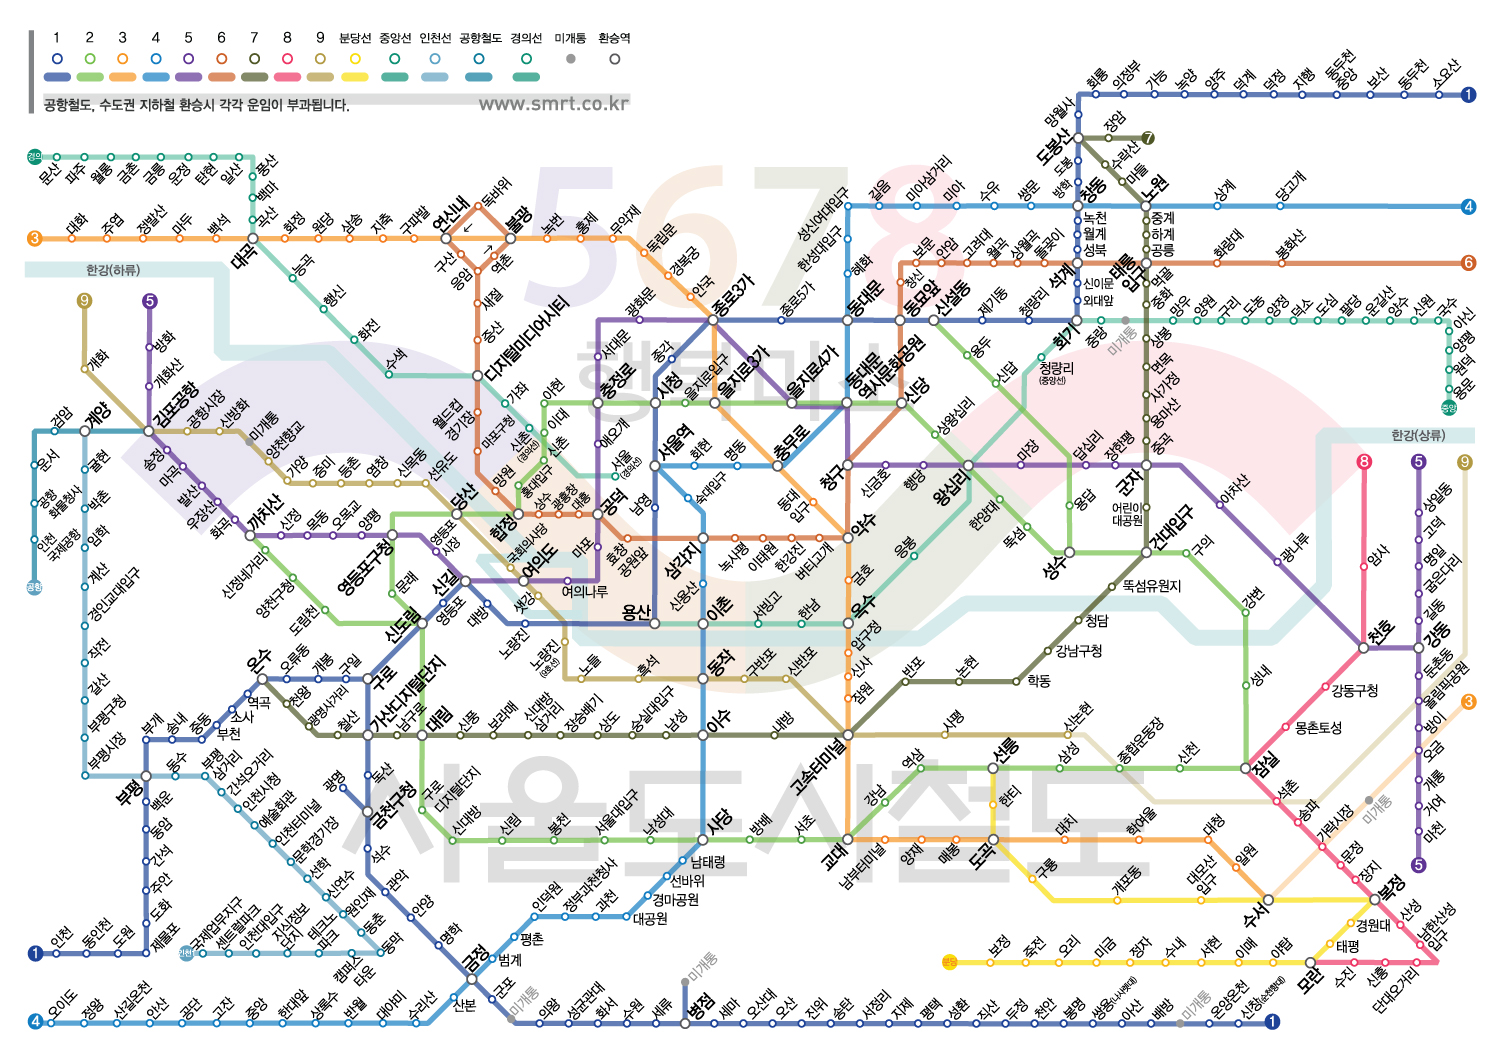 Seoul Subway Map Korean